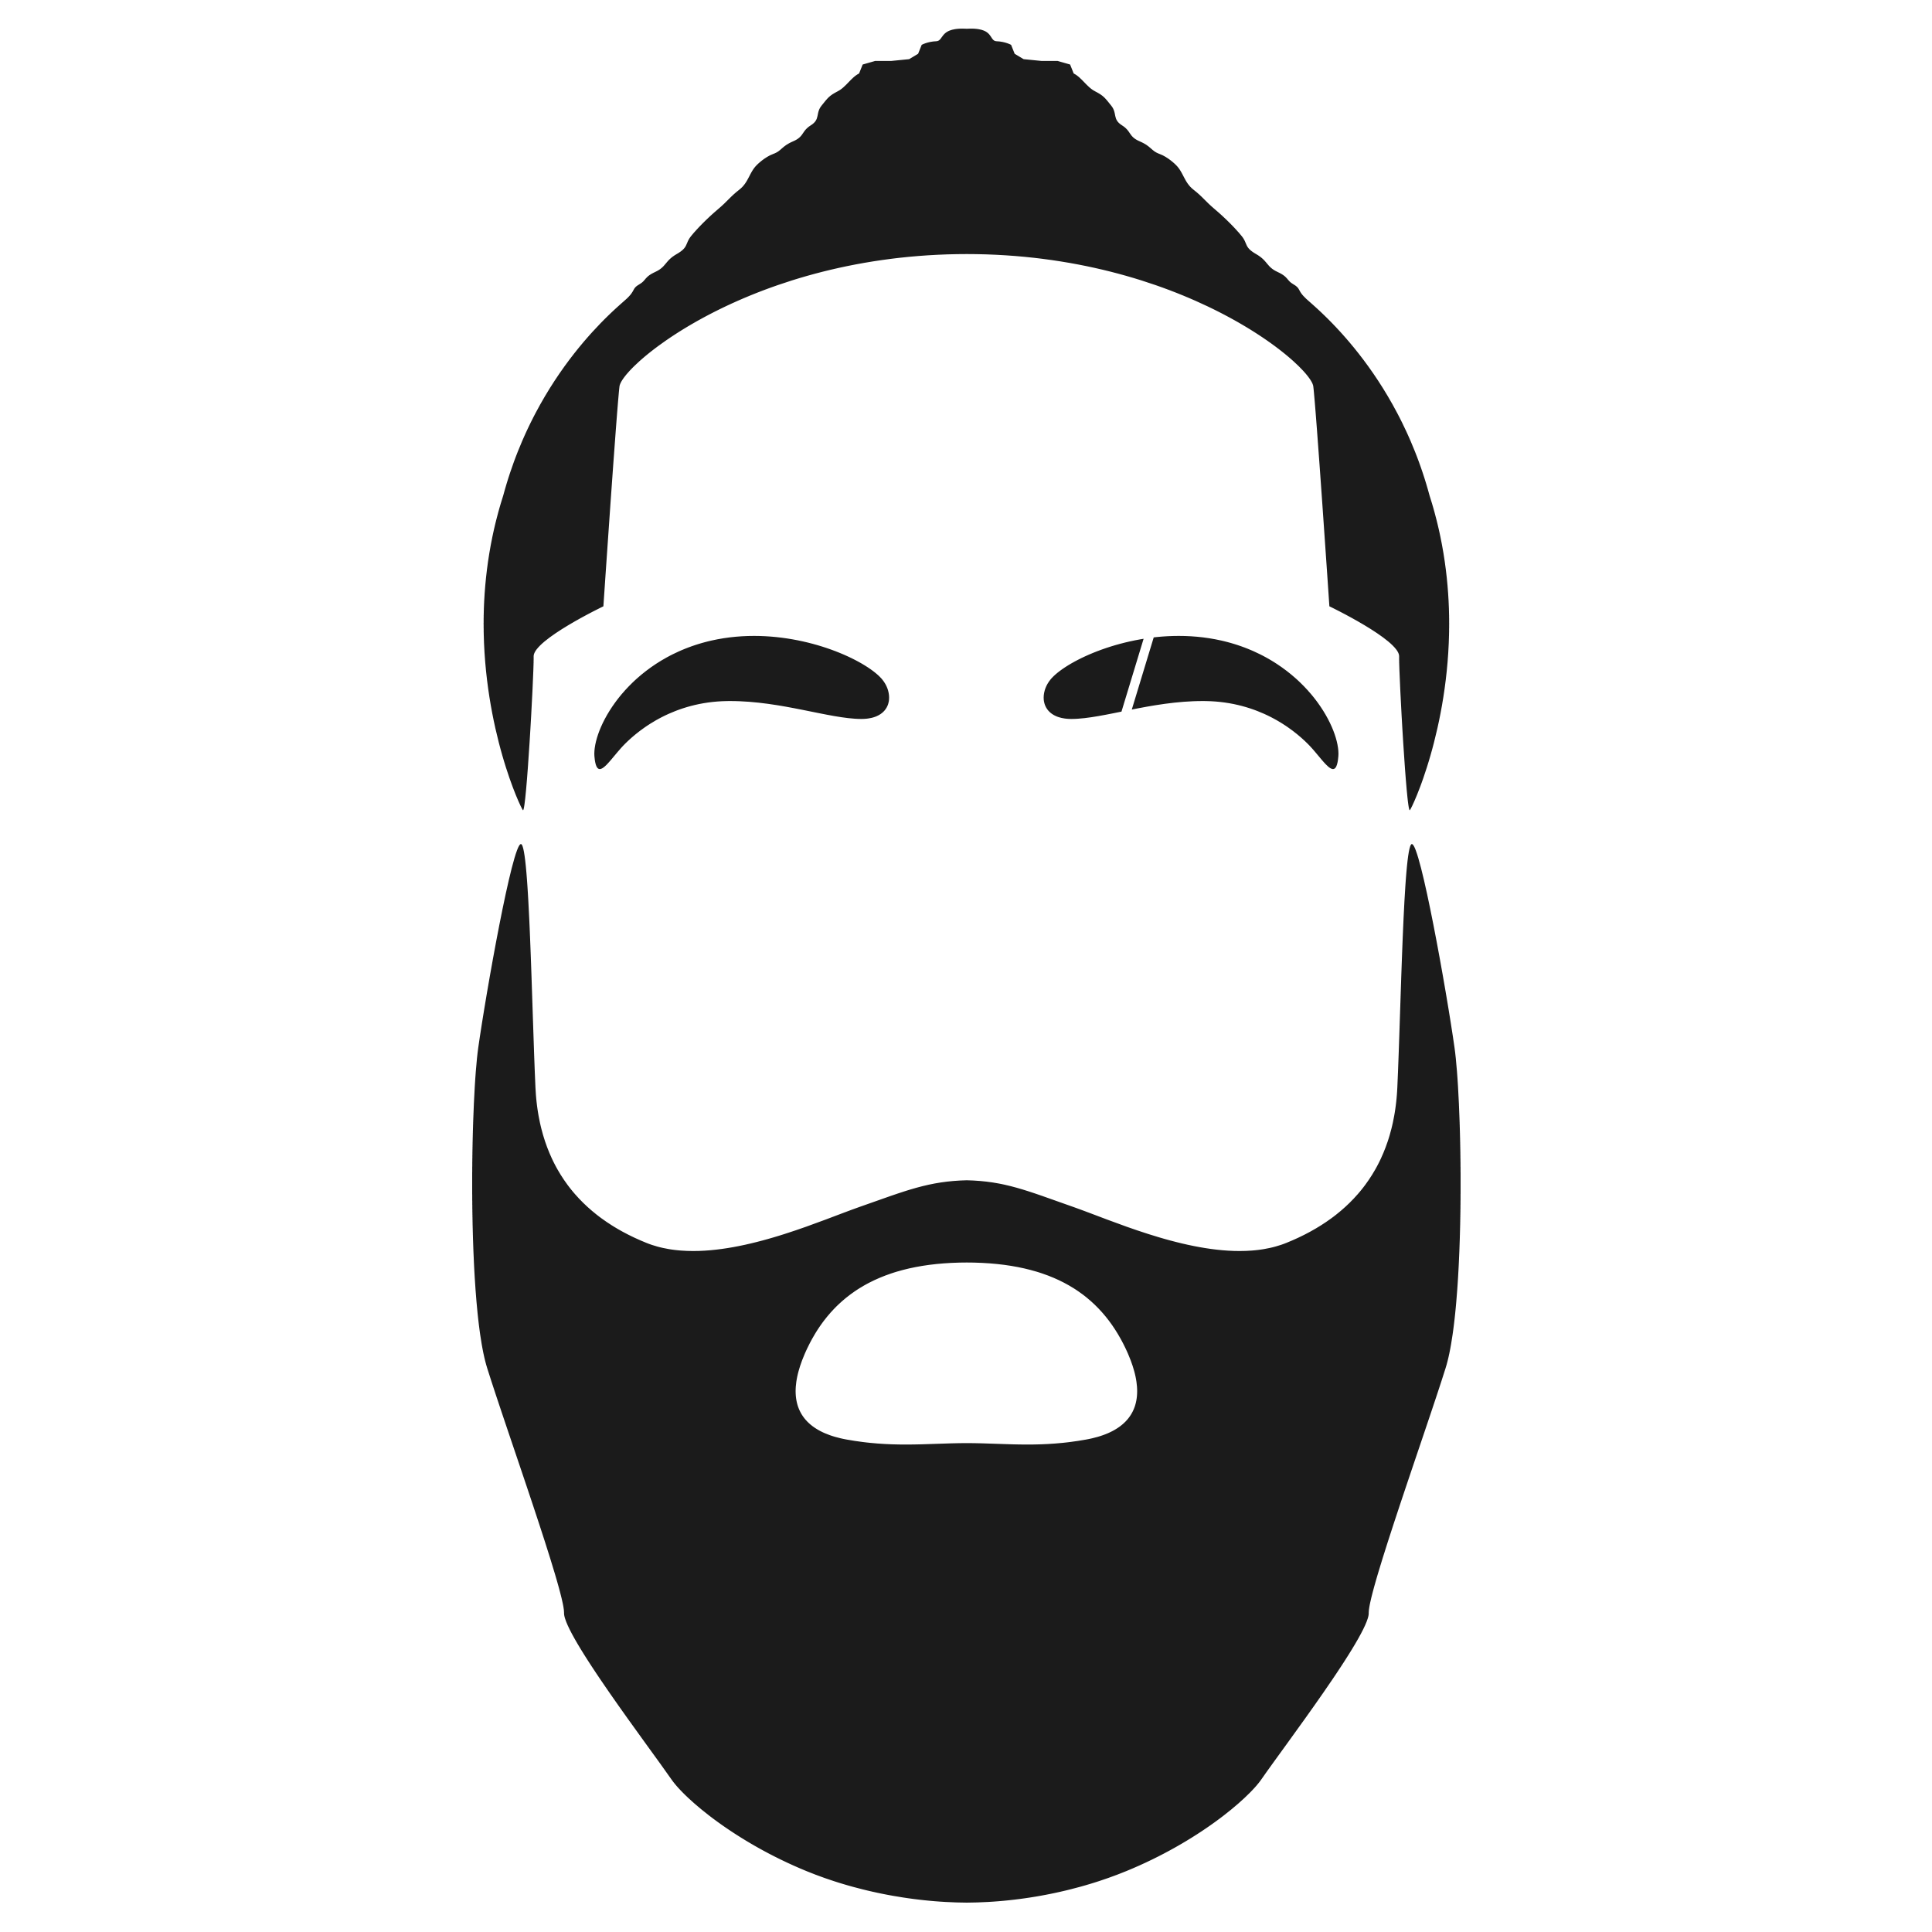 jpg black and white Beard clipart cartoon. Transparent background graphic free.